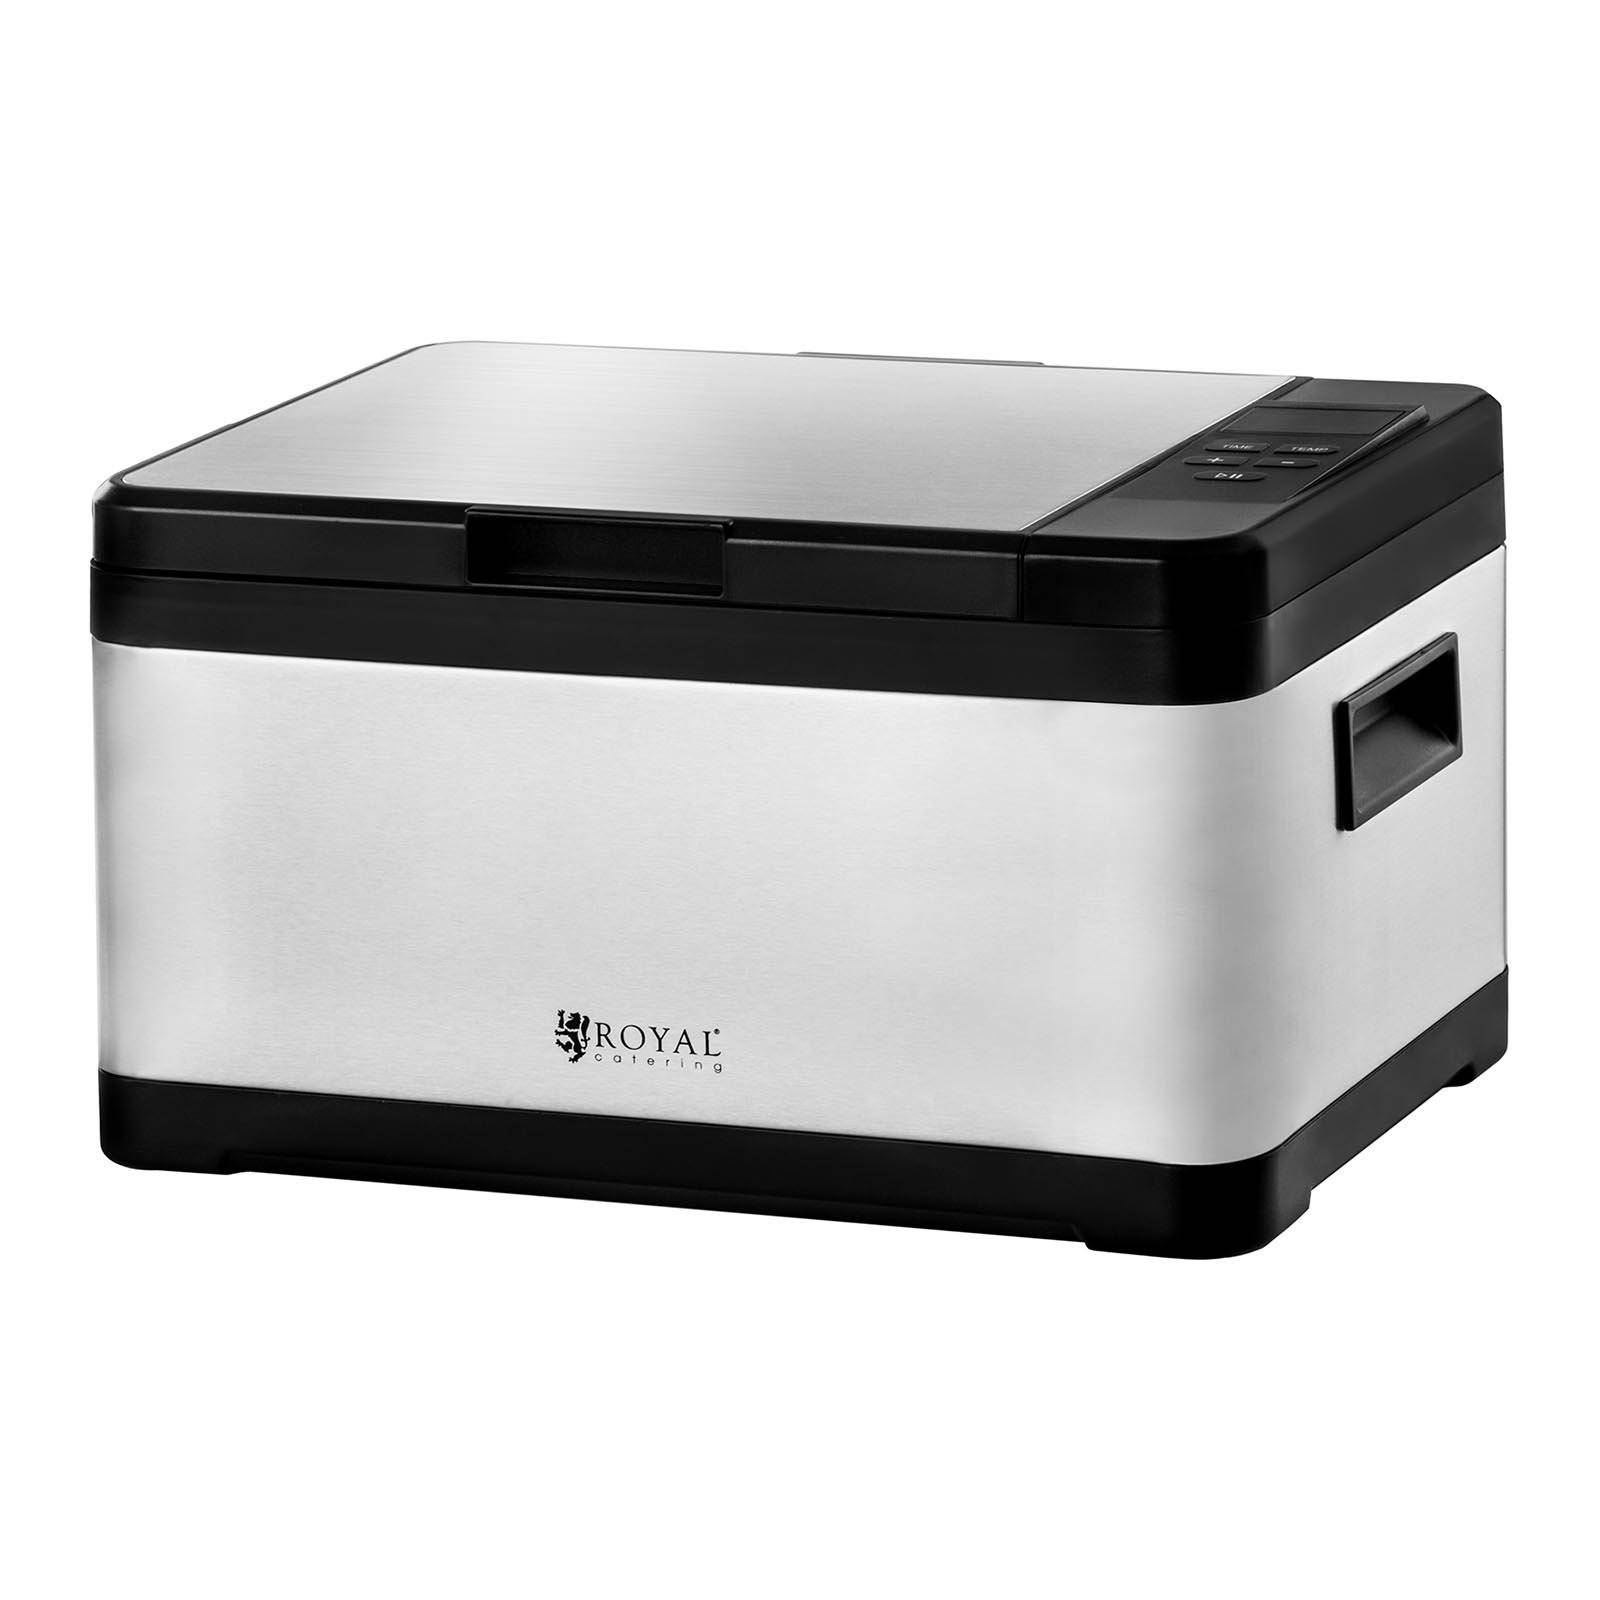 Royal Catering Sous Vide Cooker RCSV-01 - 800 Watts